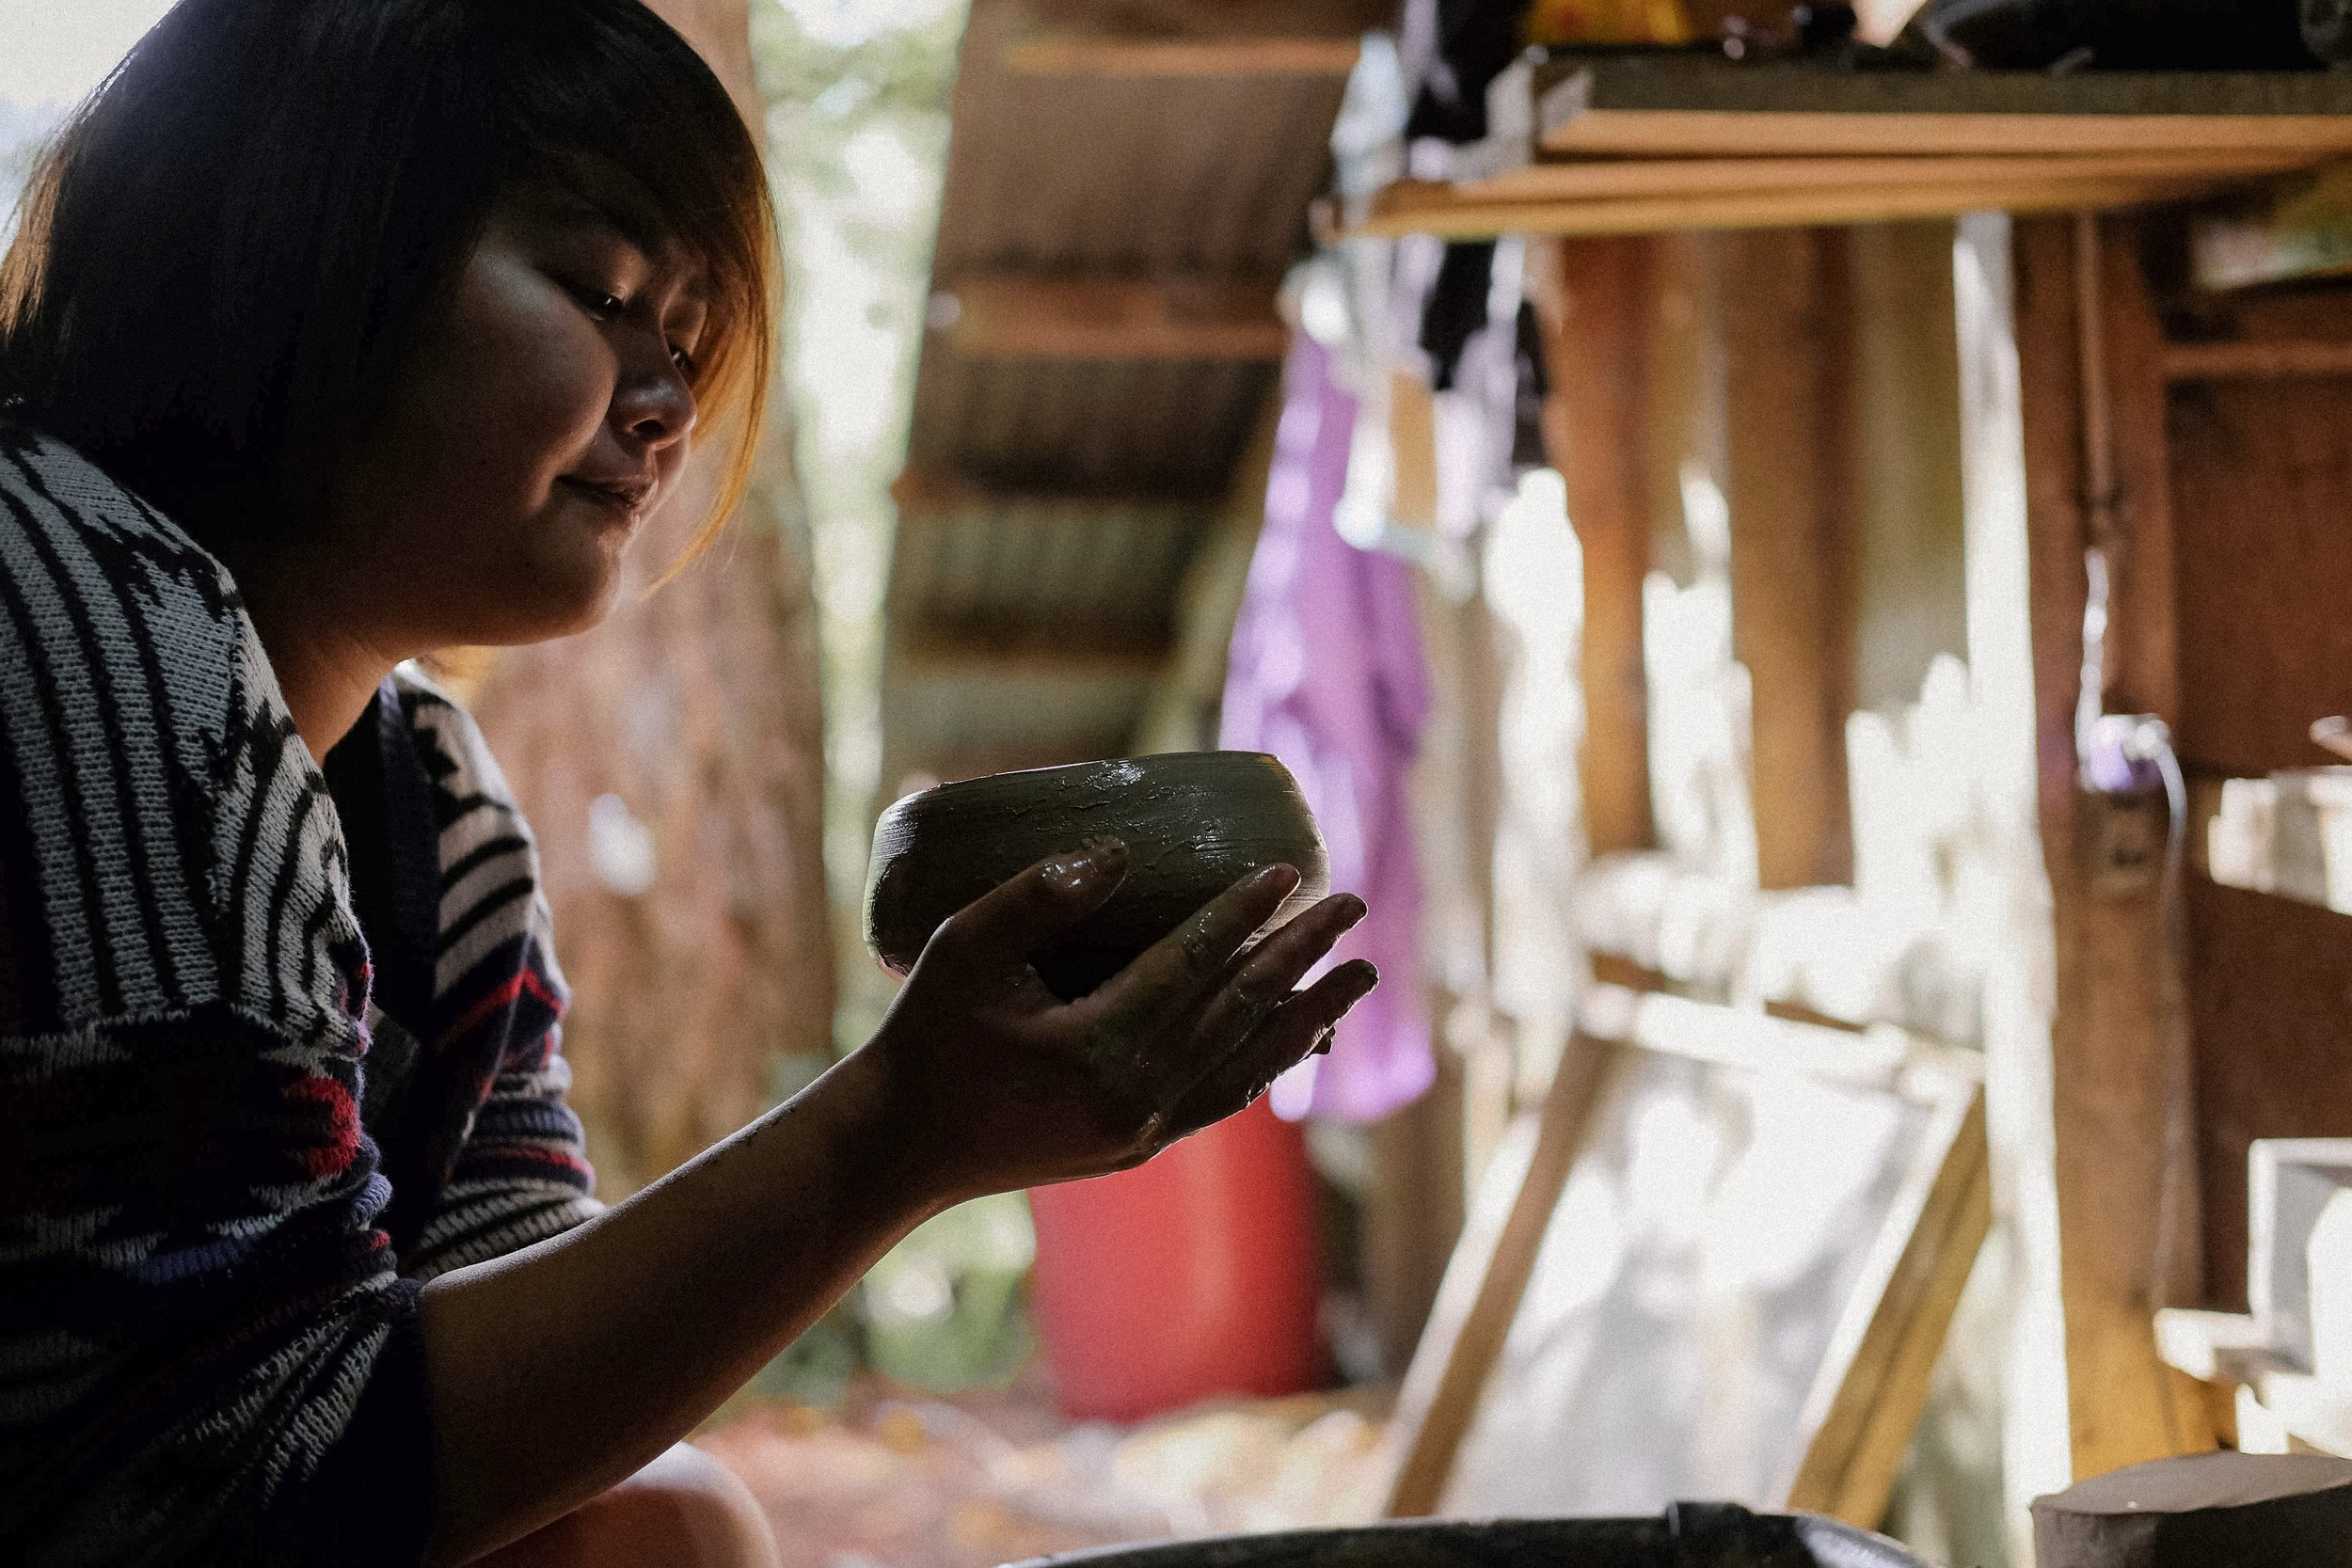 clay POTTERY - Visit the Sagada Pottery located along the main road to Besao. This is the place where my love for the art of pottery deepened.